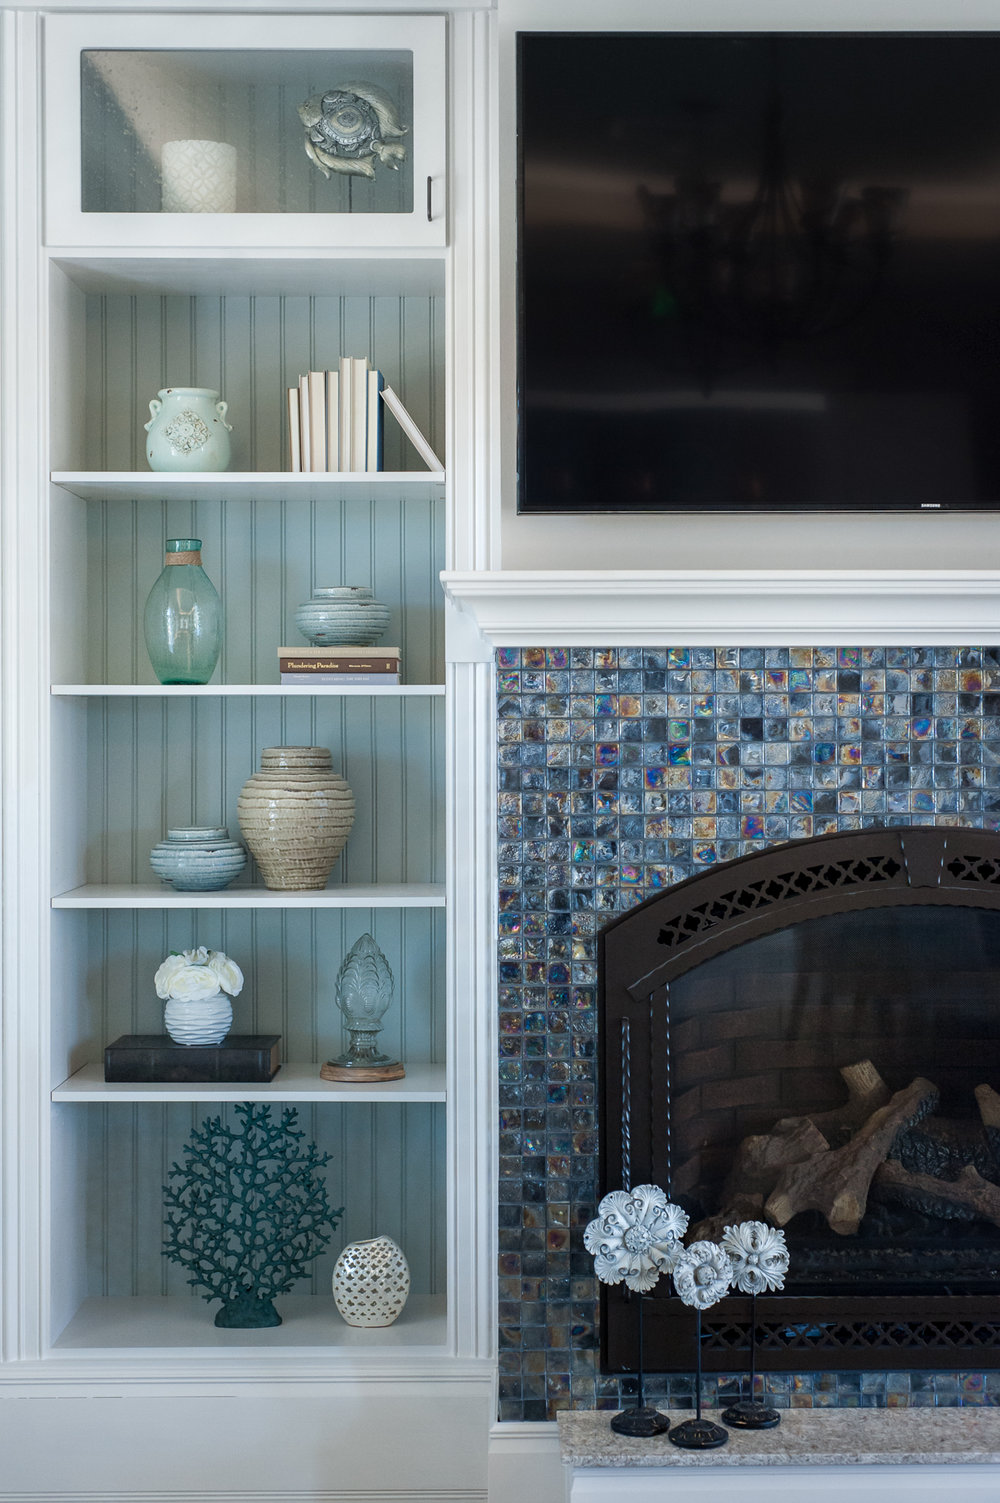 Micamy_Design_Studio_Interior_Design_Artisan_Lakes_Clubhouse_Serene_Coastal_Glass_Mosaic_Tile_Backsplash_Fireplace_SherwinWilliams_Crossville_Blue_ (4).jpg